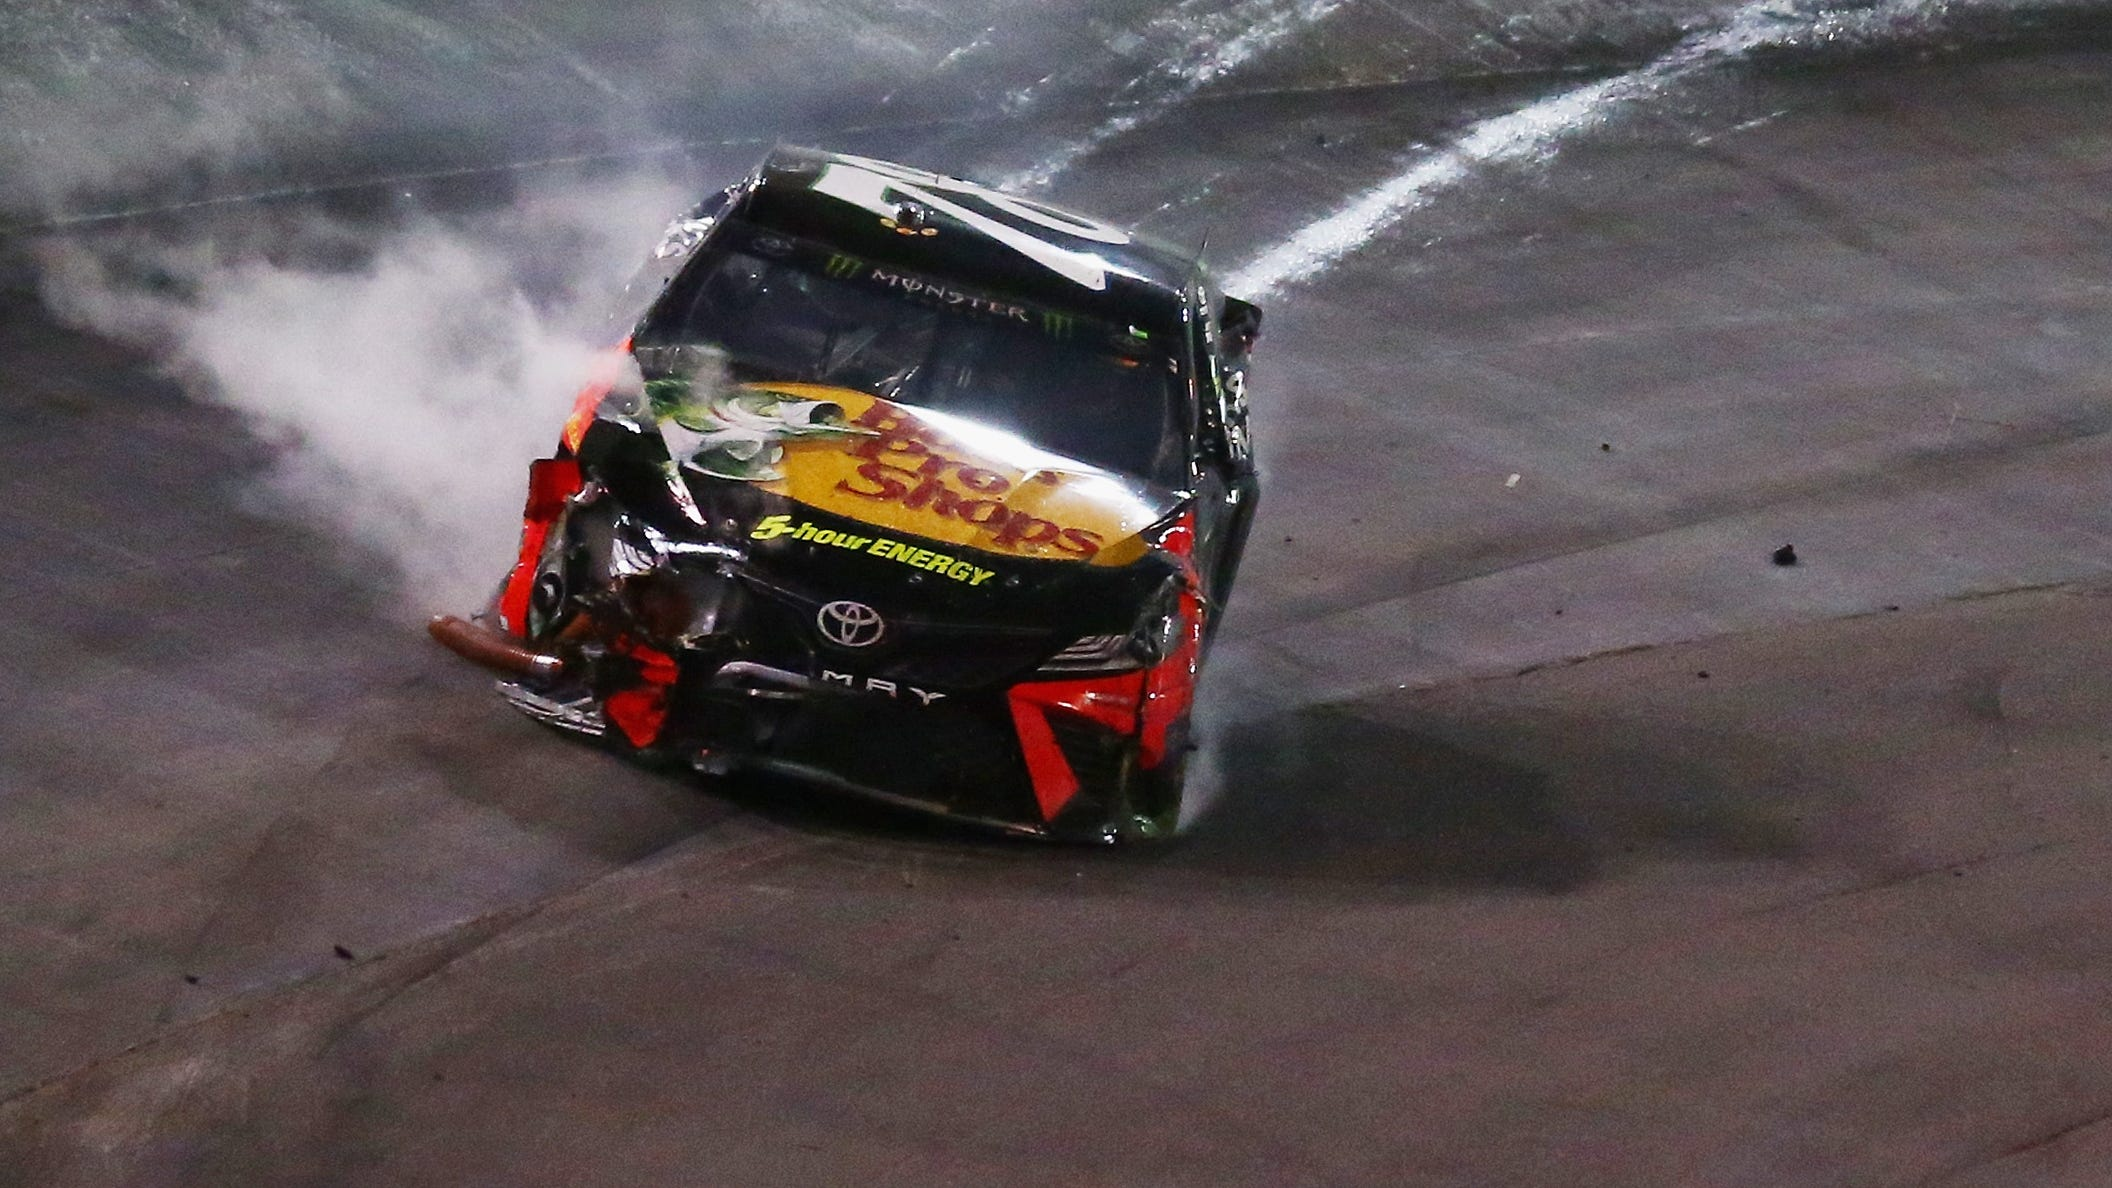 Martin Truex Jr. comes off the wall after being bumped by Kyle Busch during the Bass Pro Shops NRA Night Race.